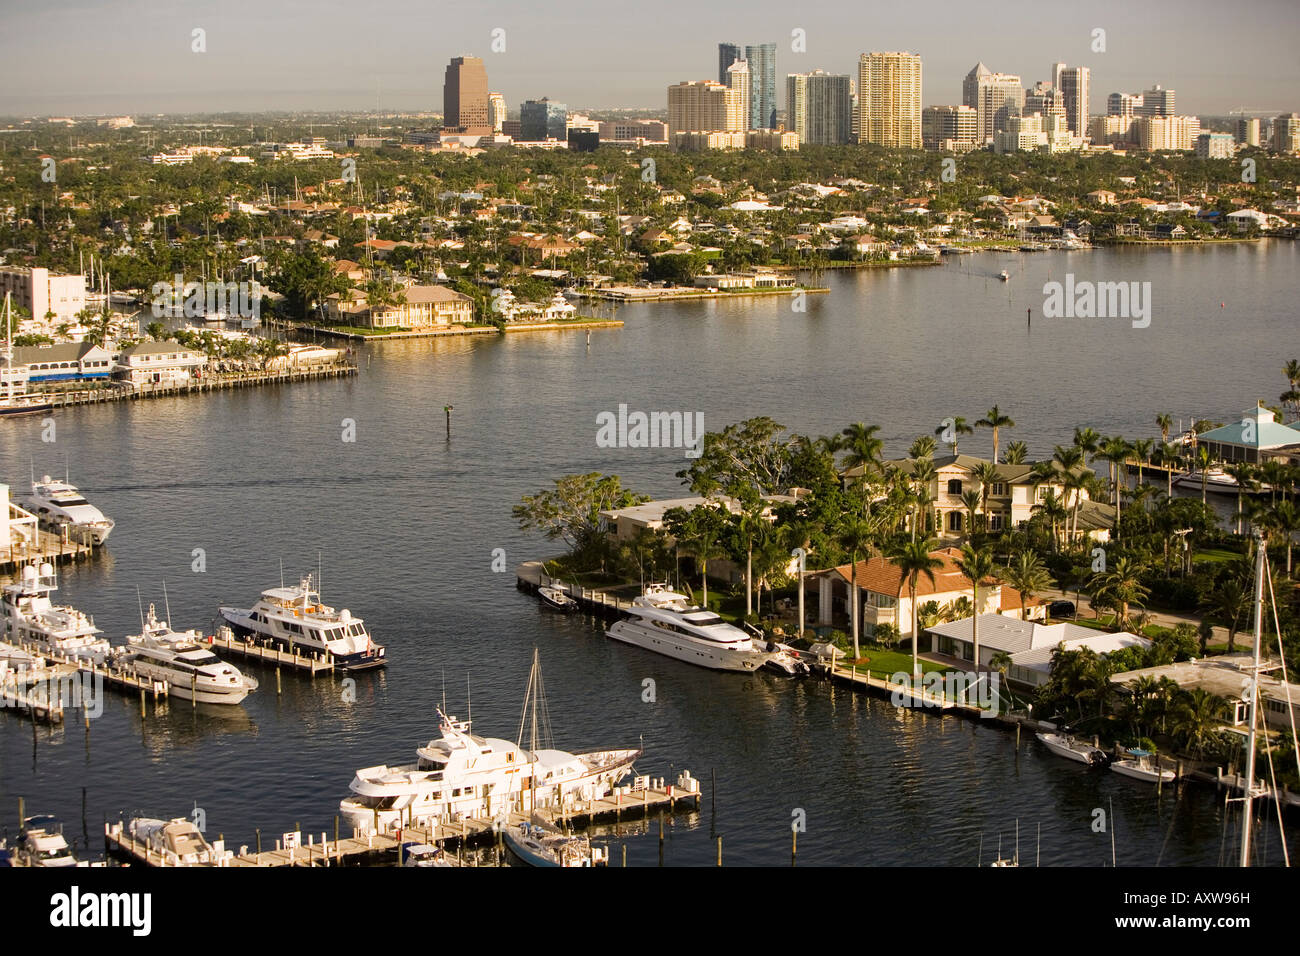 Fort Lauderdale, Florida, United States of America, North America Stock Photo